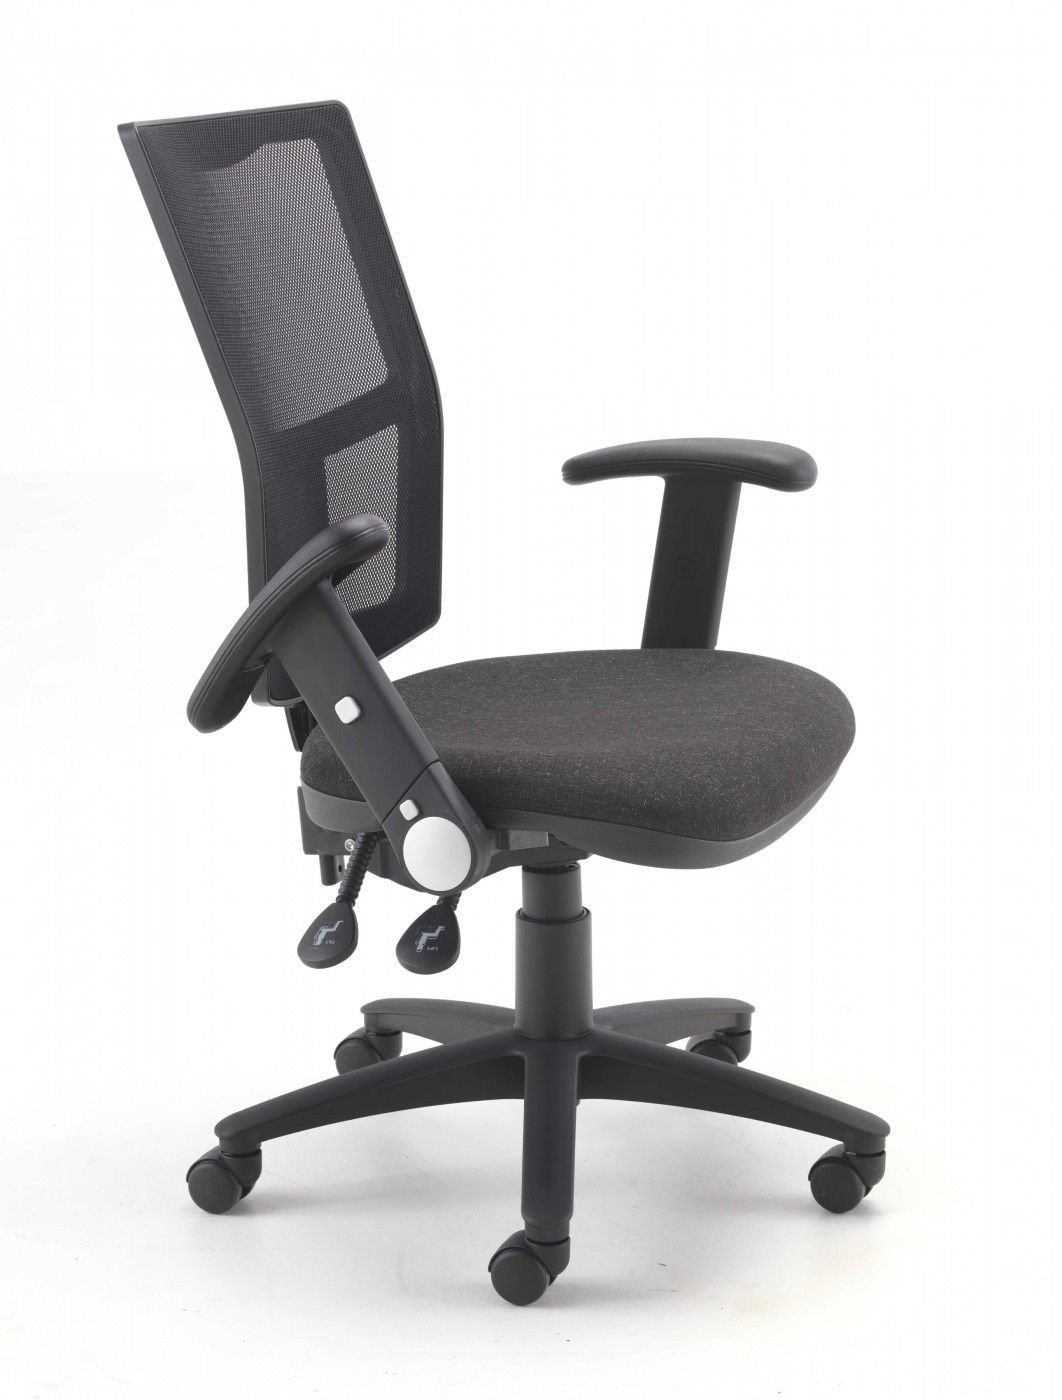 20 Fold Away Office Chair Home Furniture Sets Check More At Http